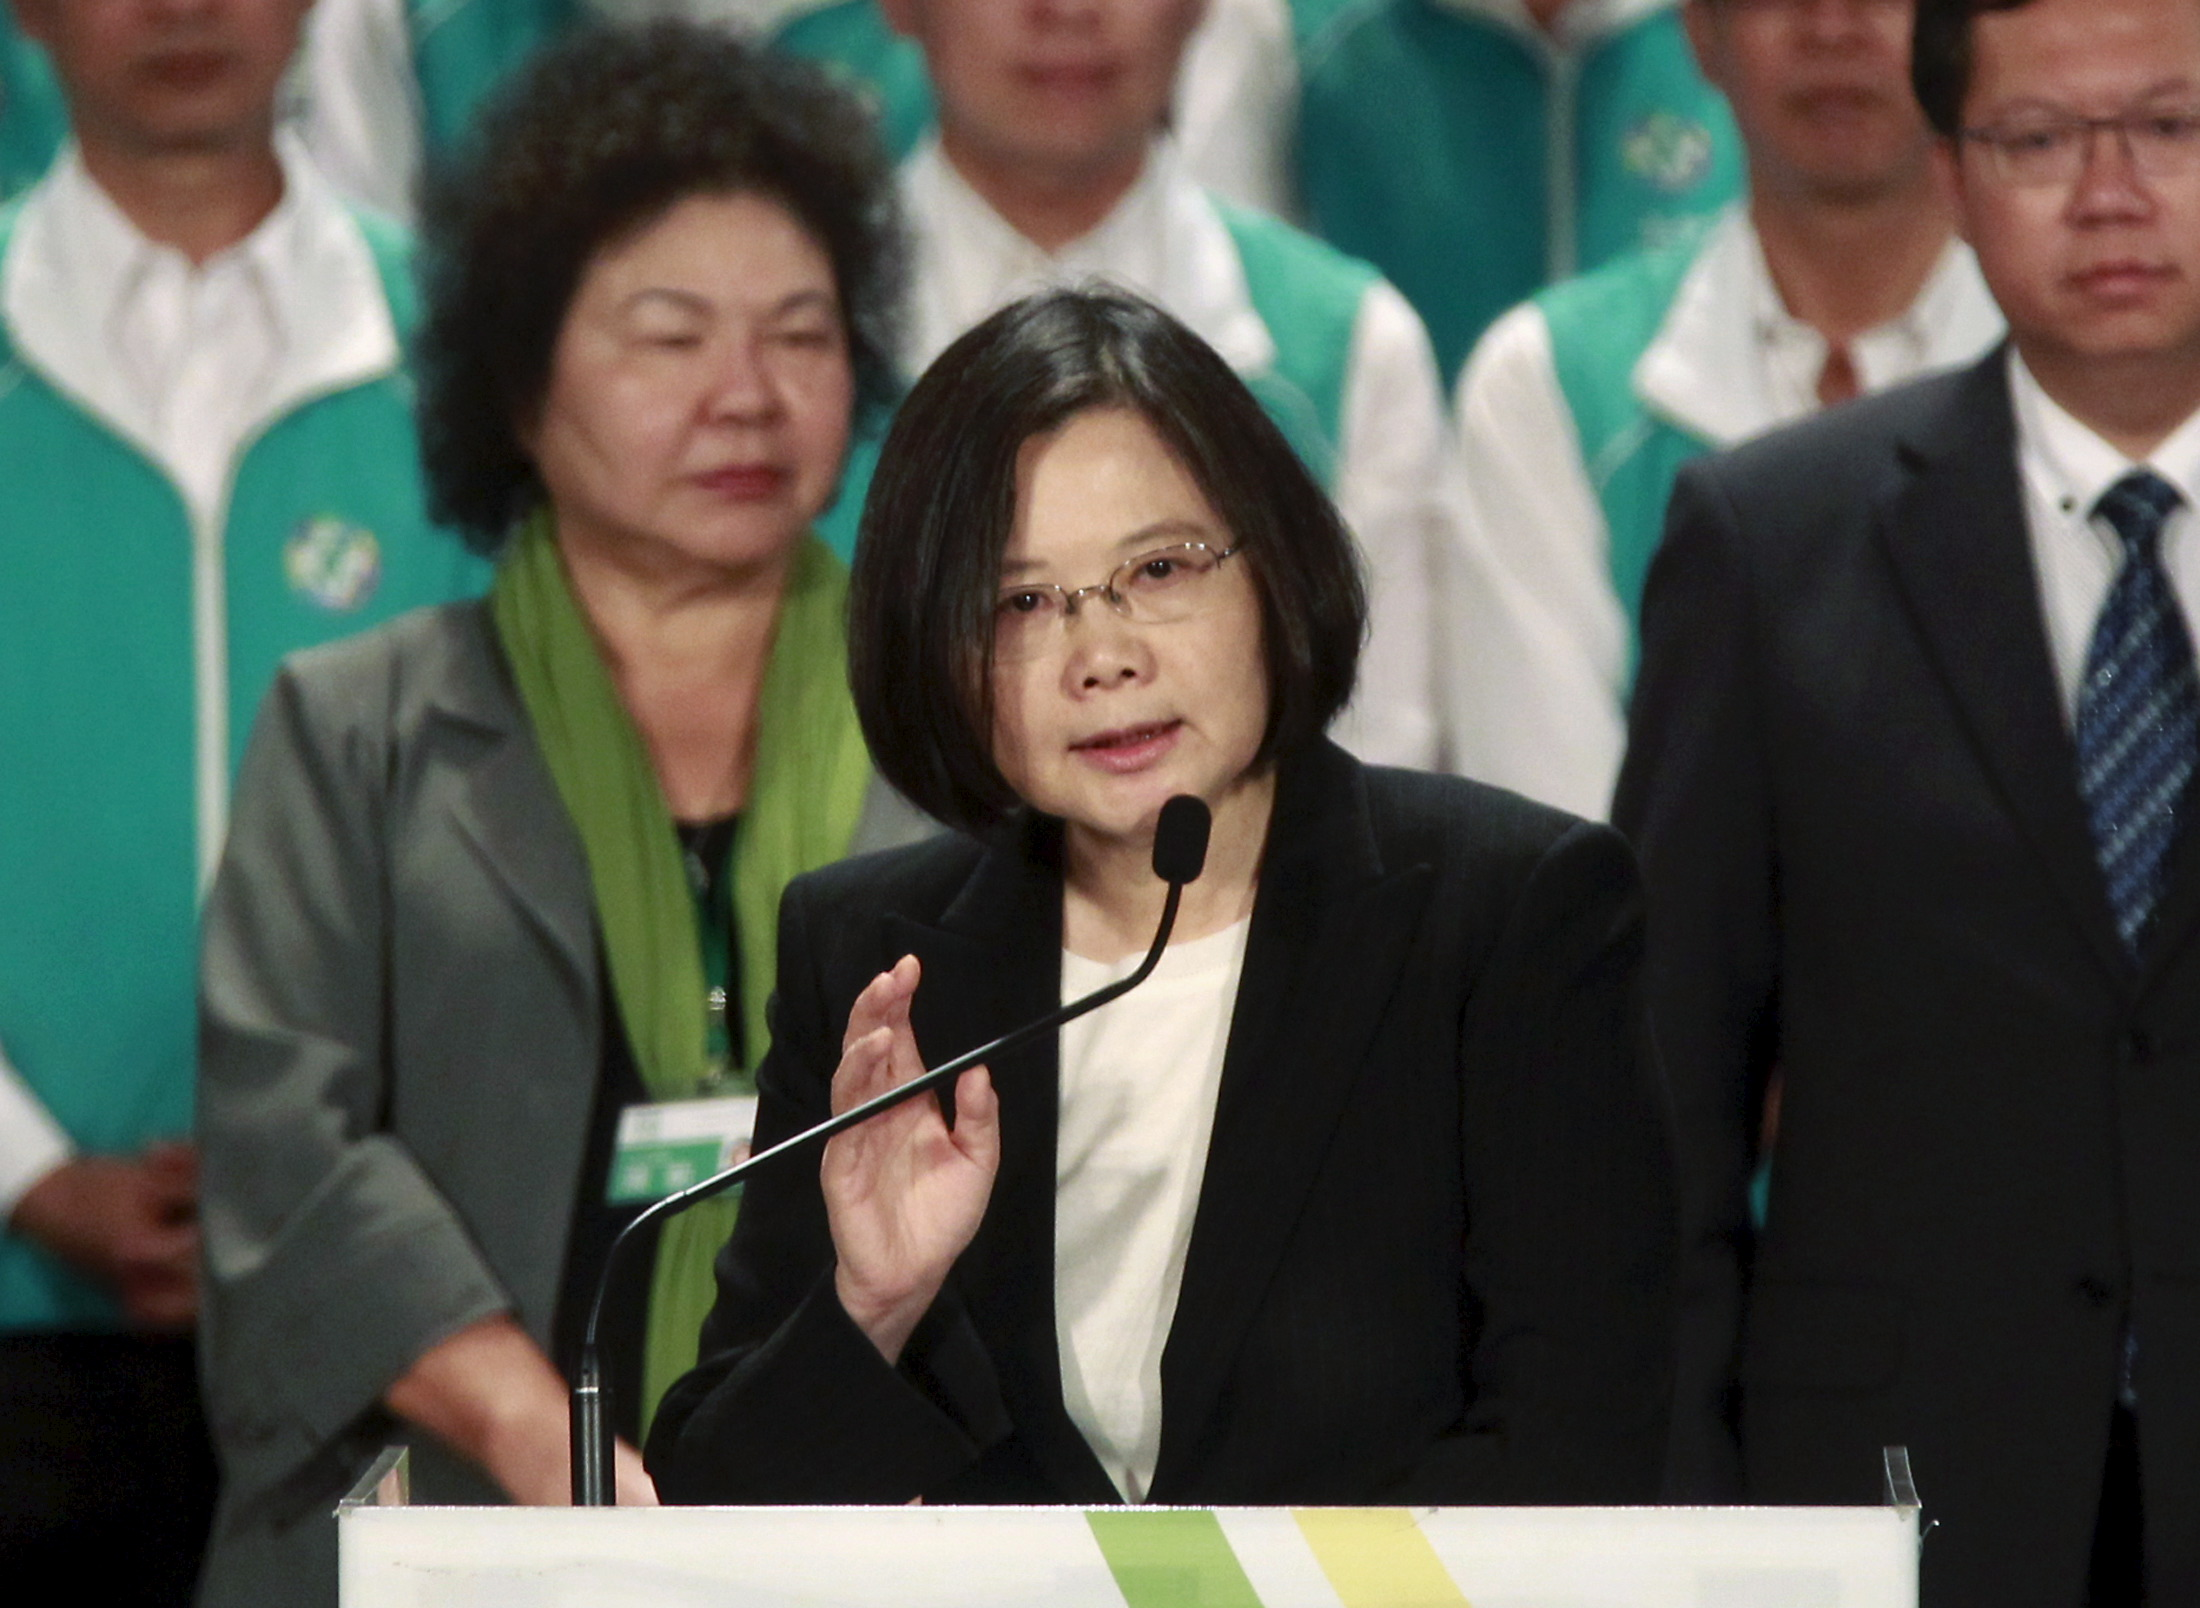 Taiwan's main opposition Democratic Progressive Party (DPP) Chairperson Tsai Ing-wen gives a speech at a party congress in Taoyuan, northern Taiwan, Sept. 19, 2015.